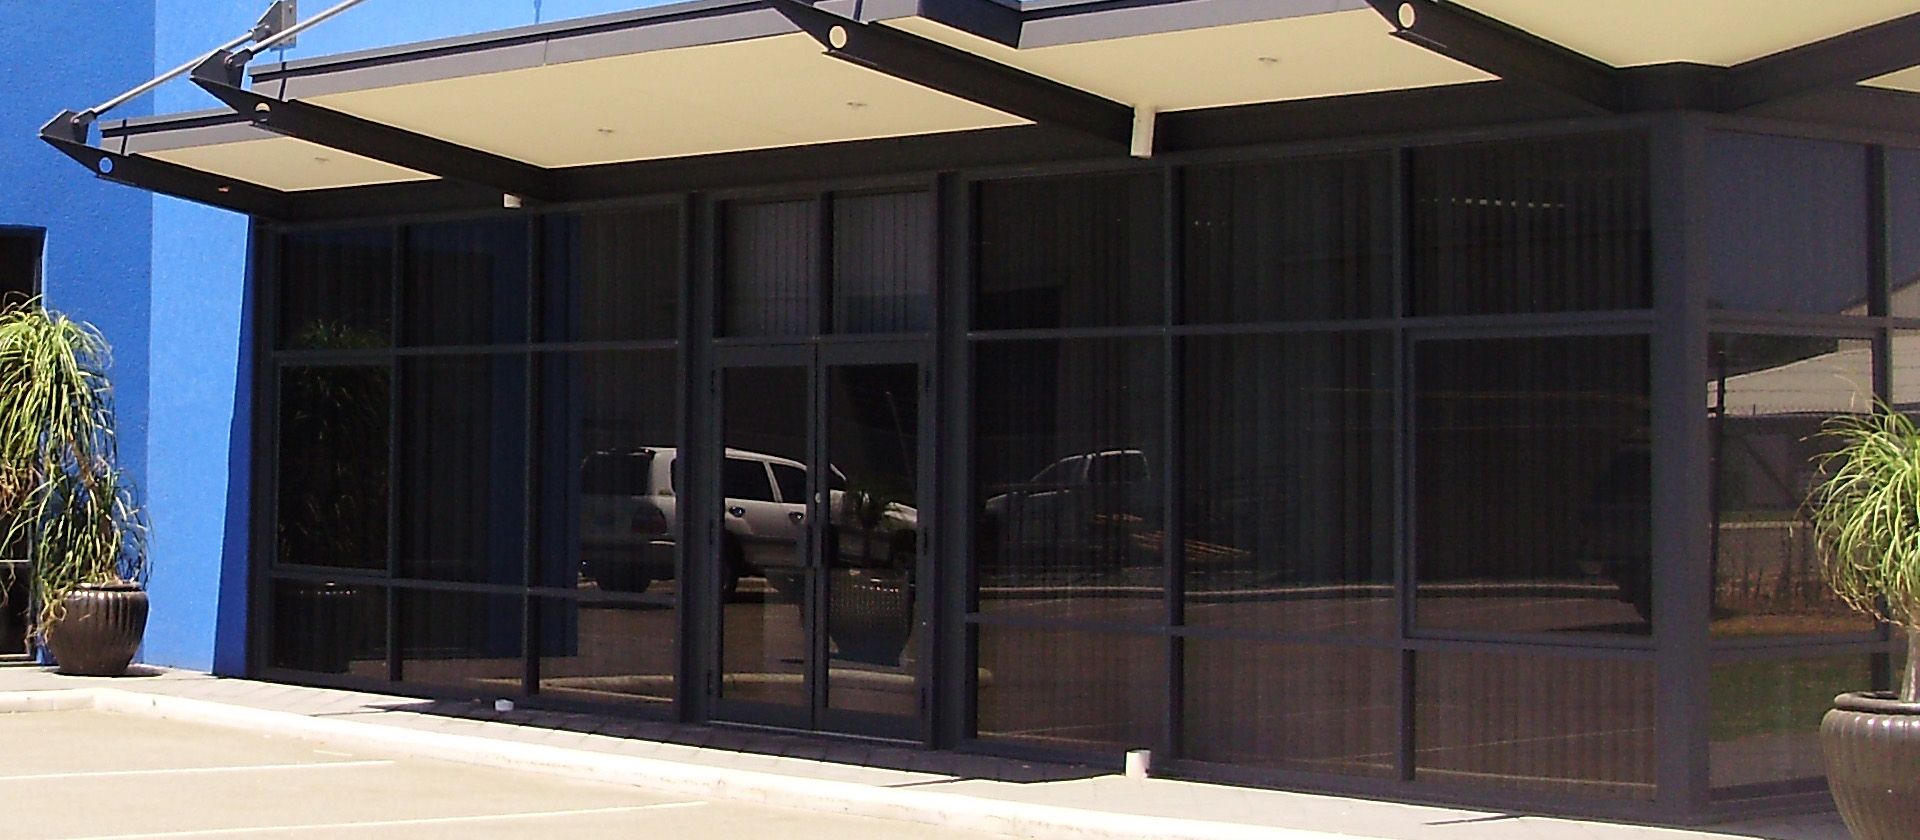 Reduce glare at your office with solar window tinting